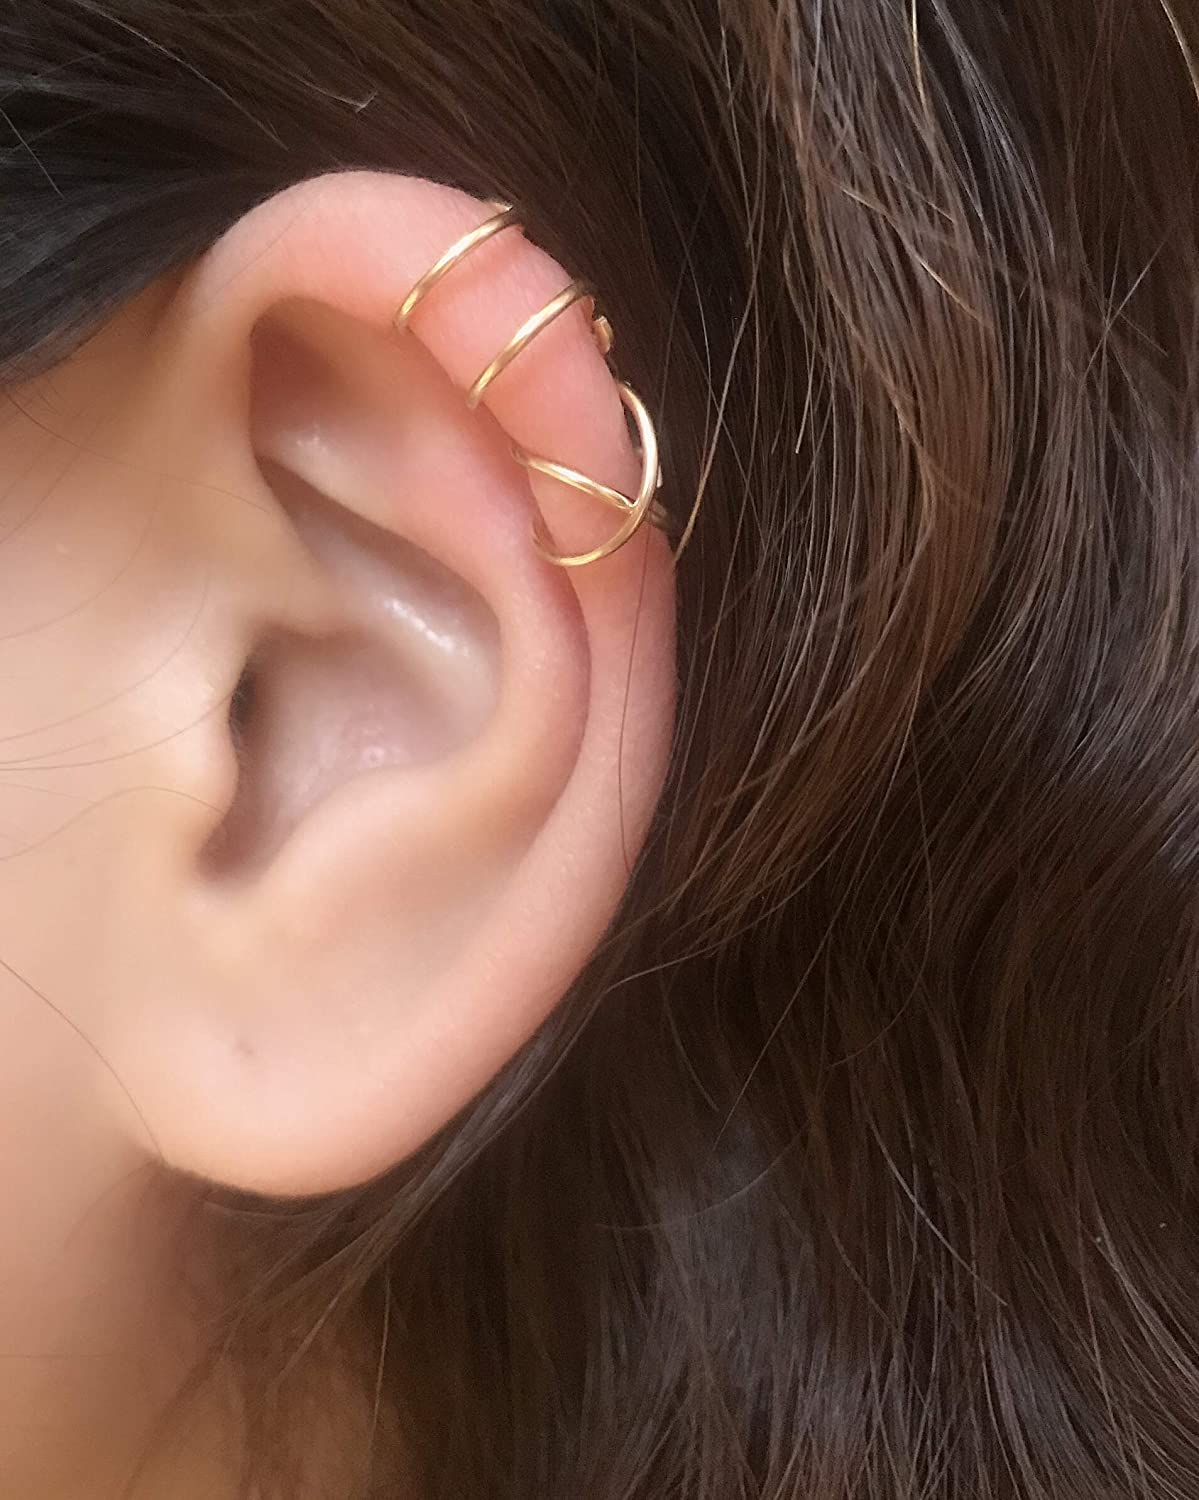 Peony.T 14k Gold Filled 2PCS Simple Line Ear Cuff Non Piercing Clip on Cartilage Earrings for Men Women Silver/Gold/Rose Color Double&Criss Cross Ear Cuffs